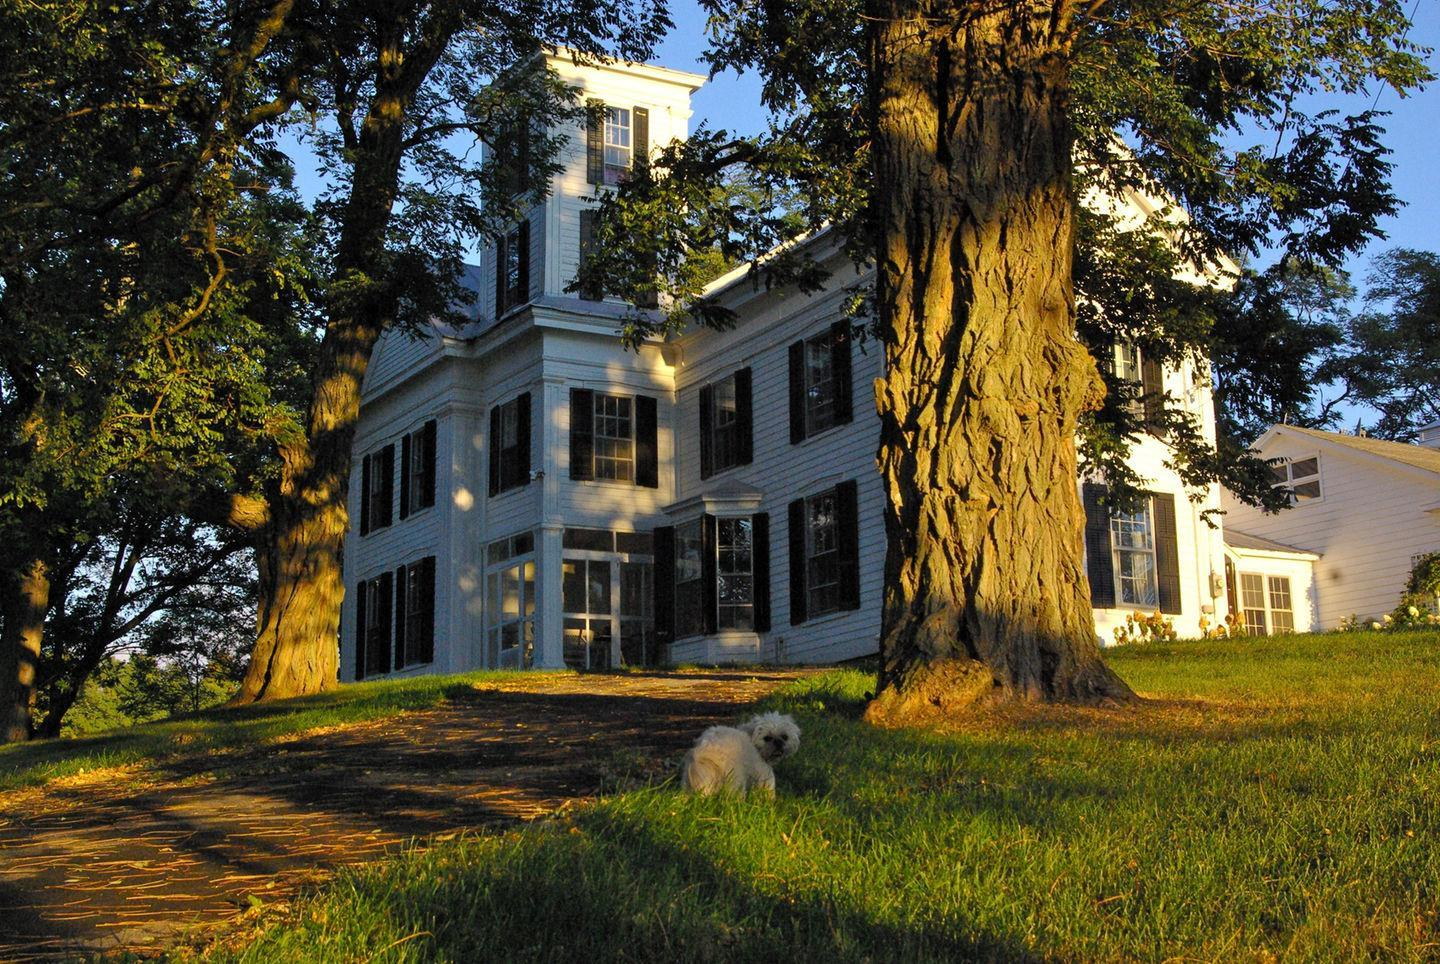 Historic Catskill Mountain House Pet Policy